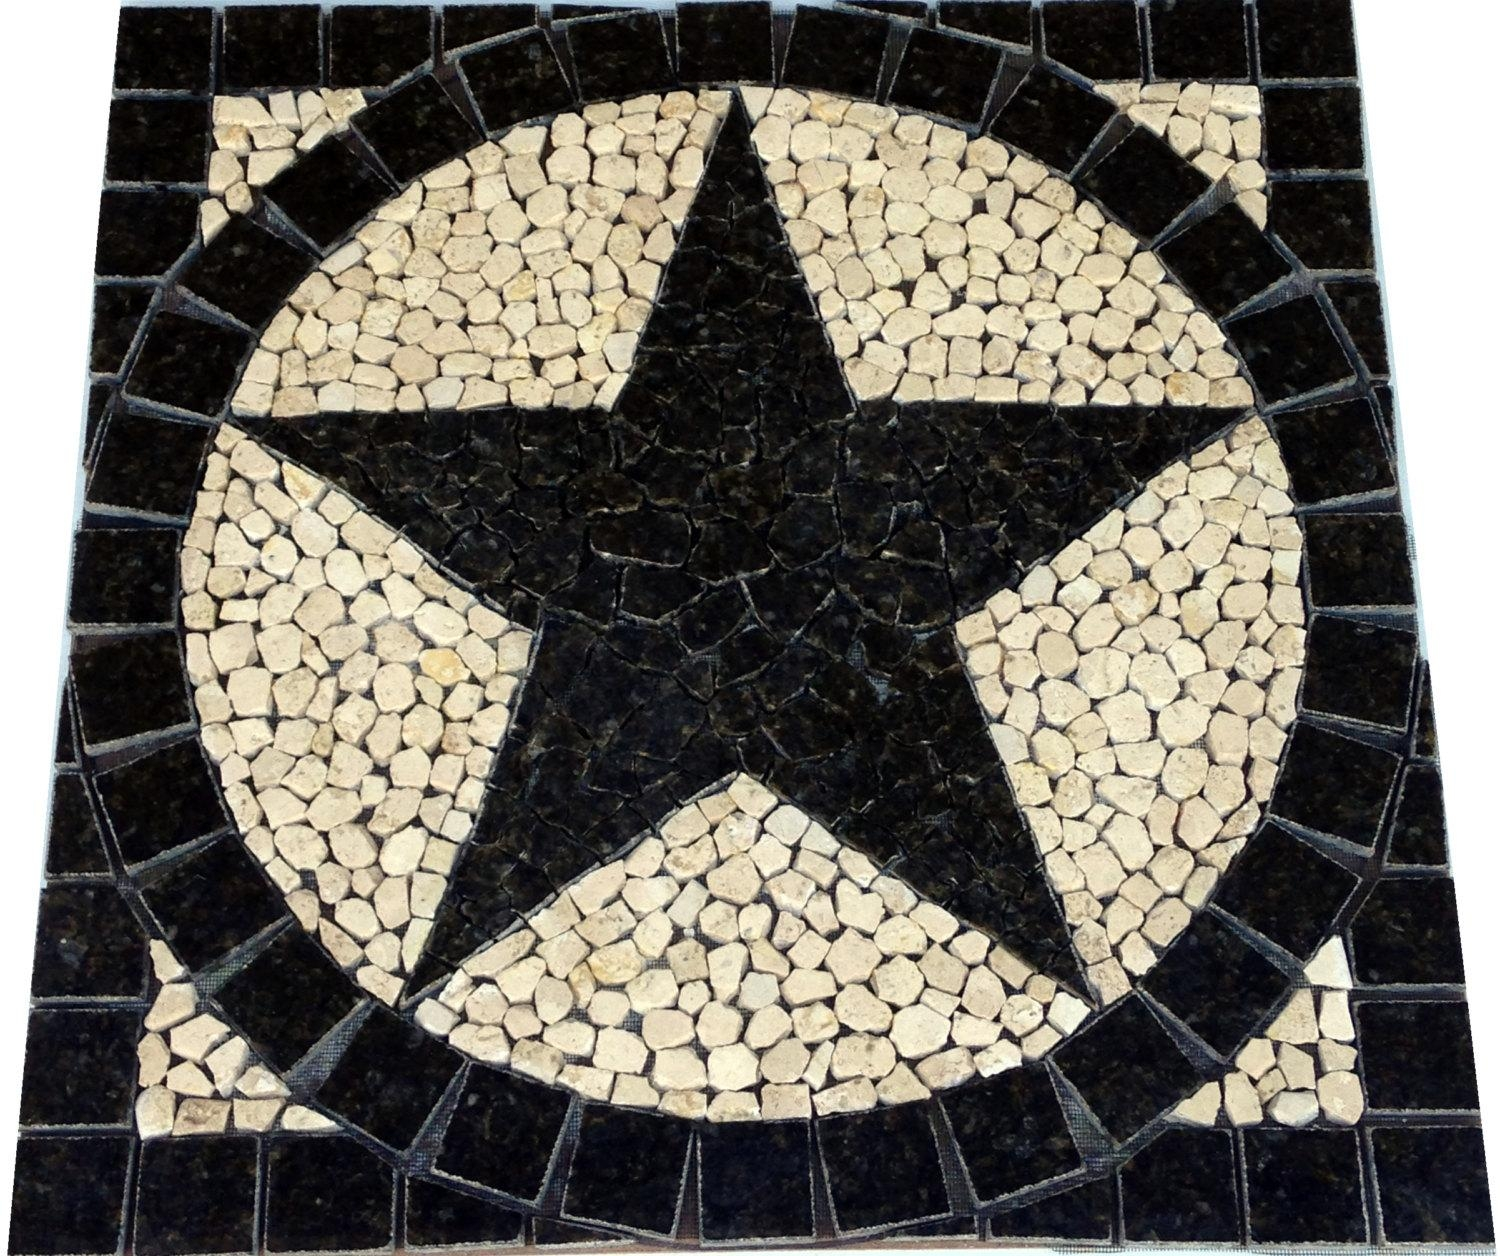 Sq Uba Tuba Granite Texas Star Mosaic Tile Medallion Intended For Texas Star Wall Art (Image 3 of 20)